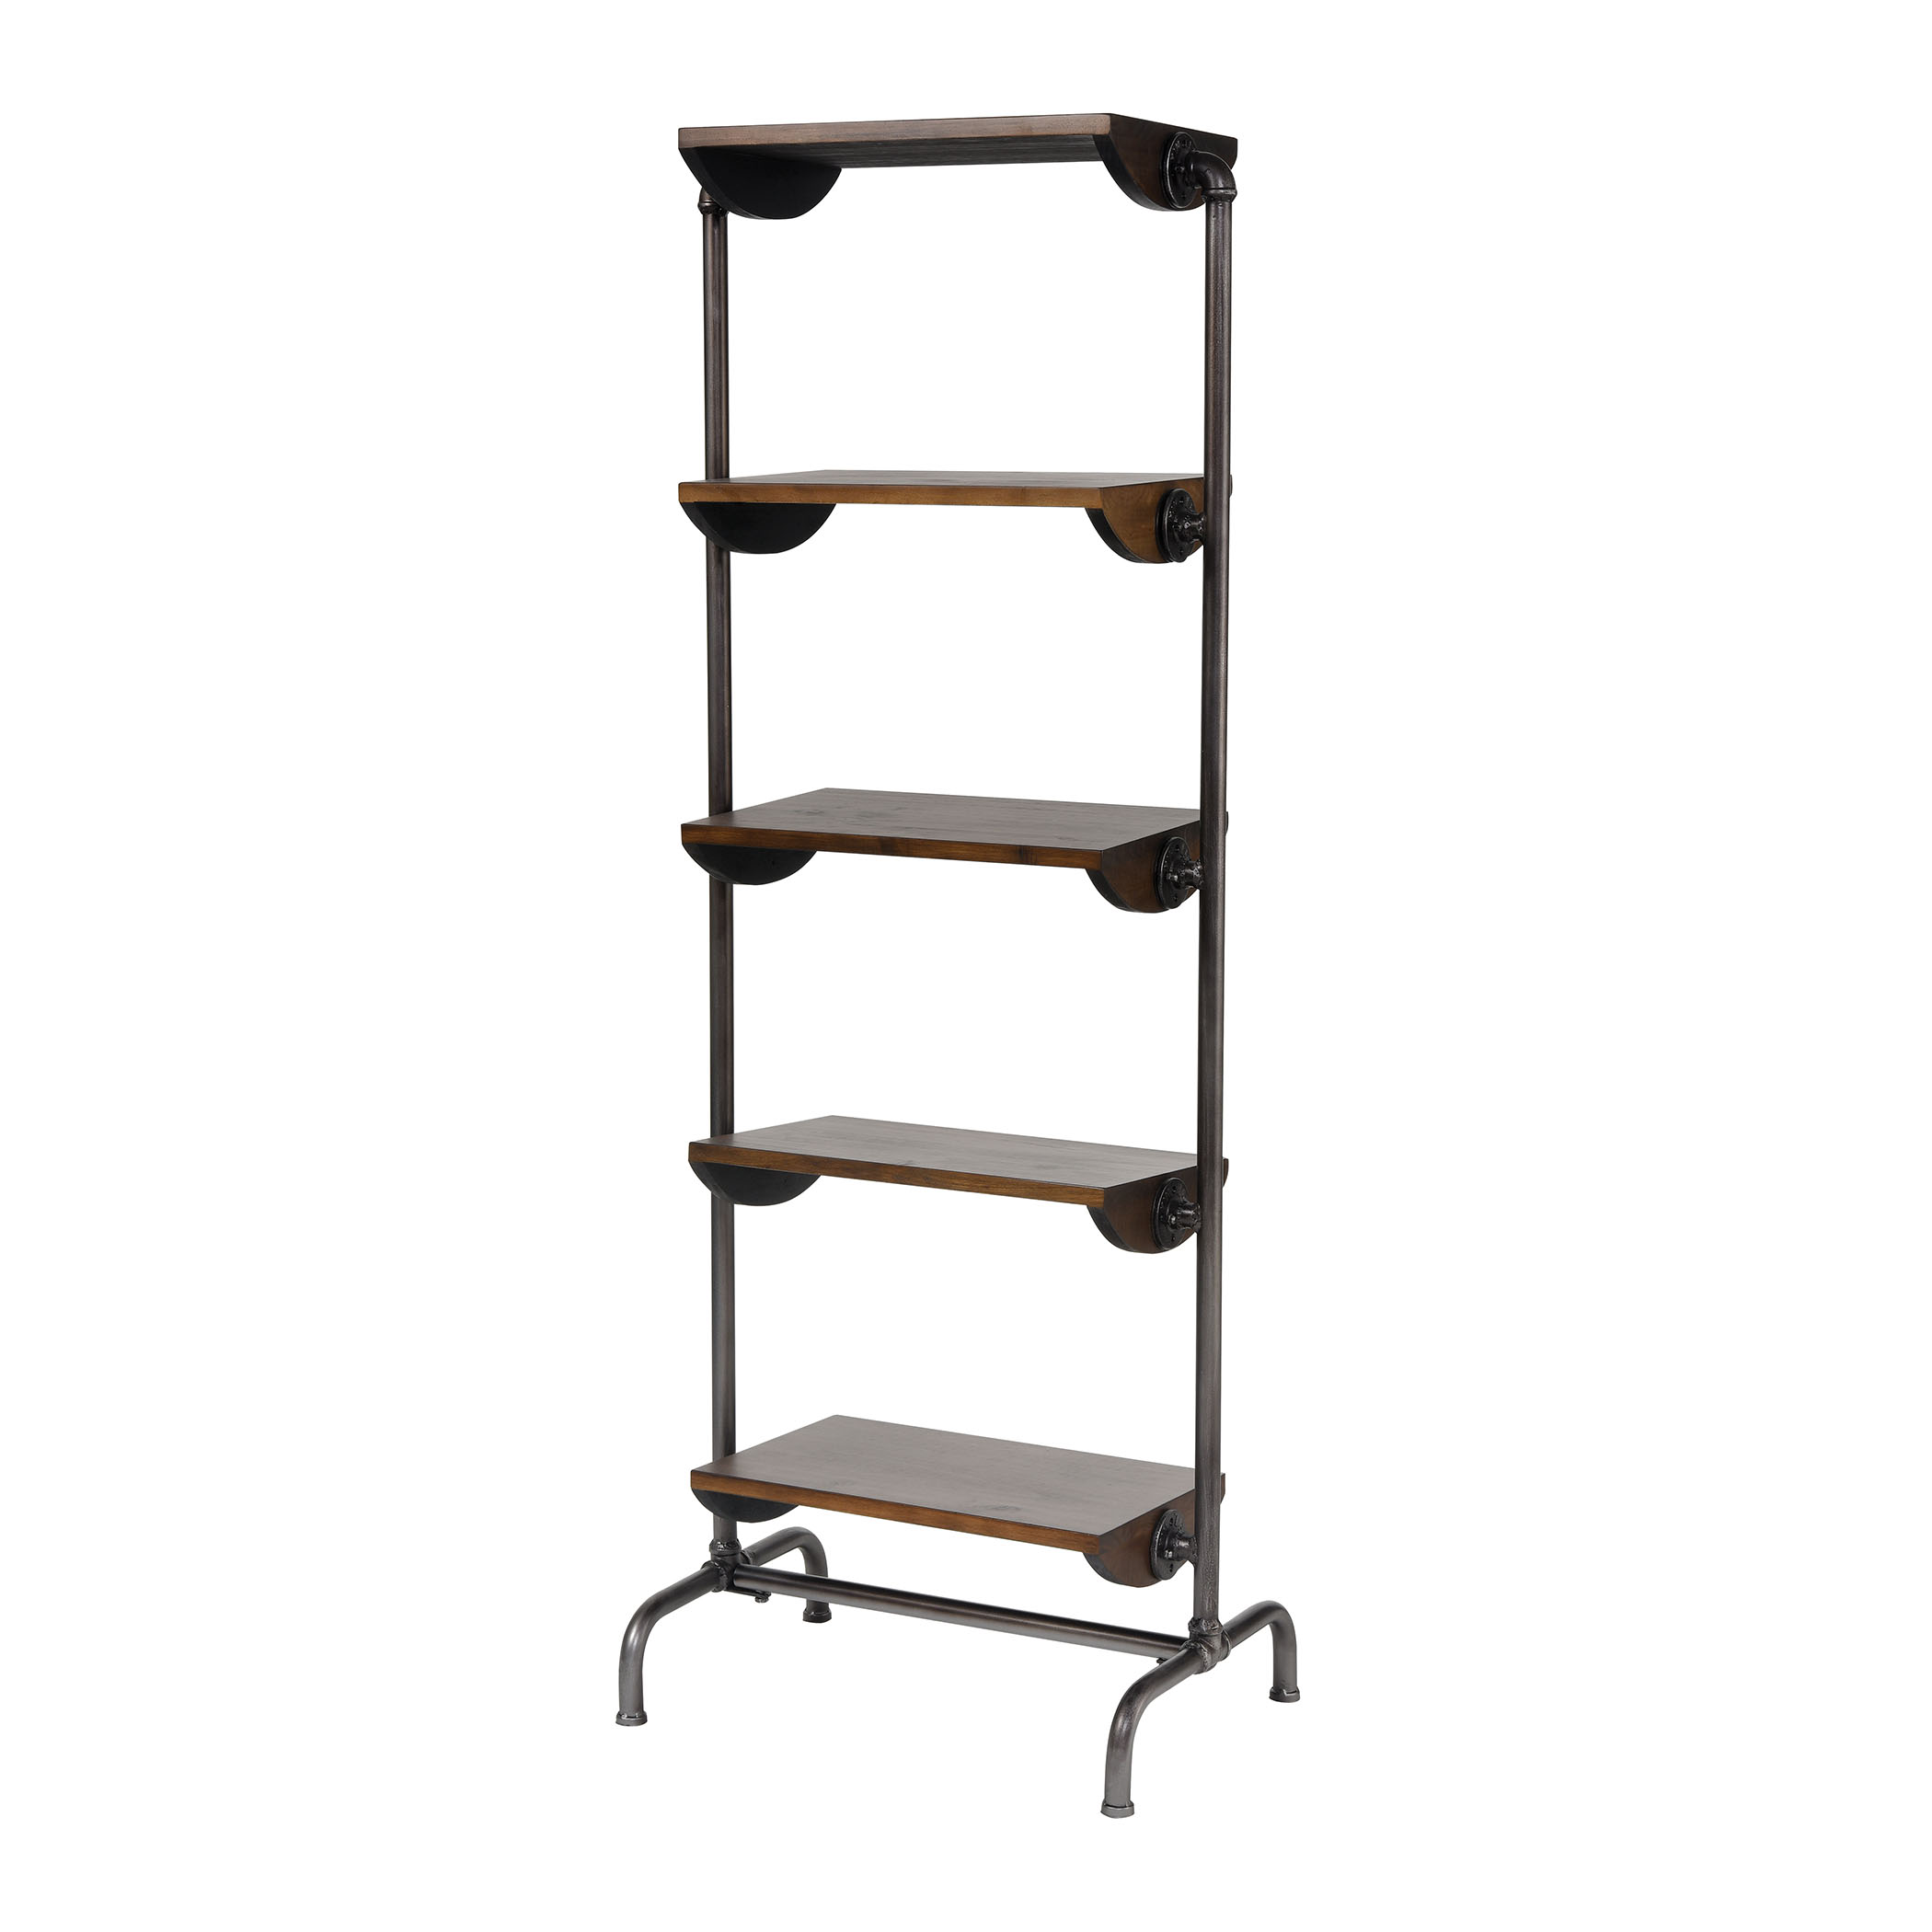 Industry City Bookcase in Black And Natural Wood Tone 3200-234 | ELK Home